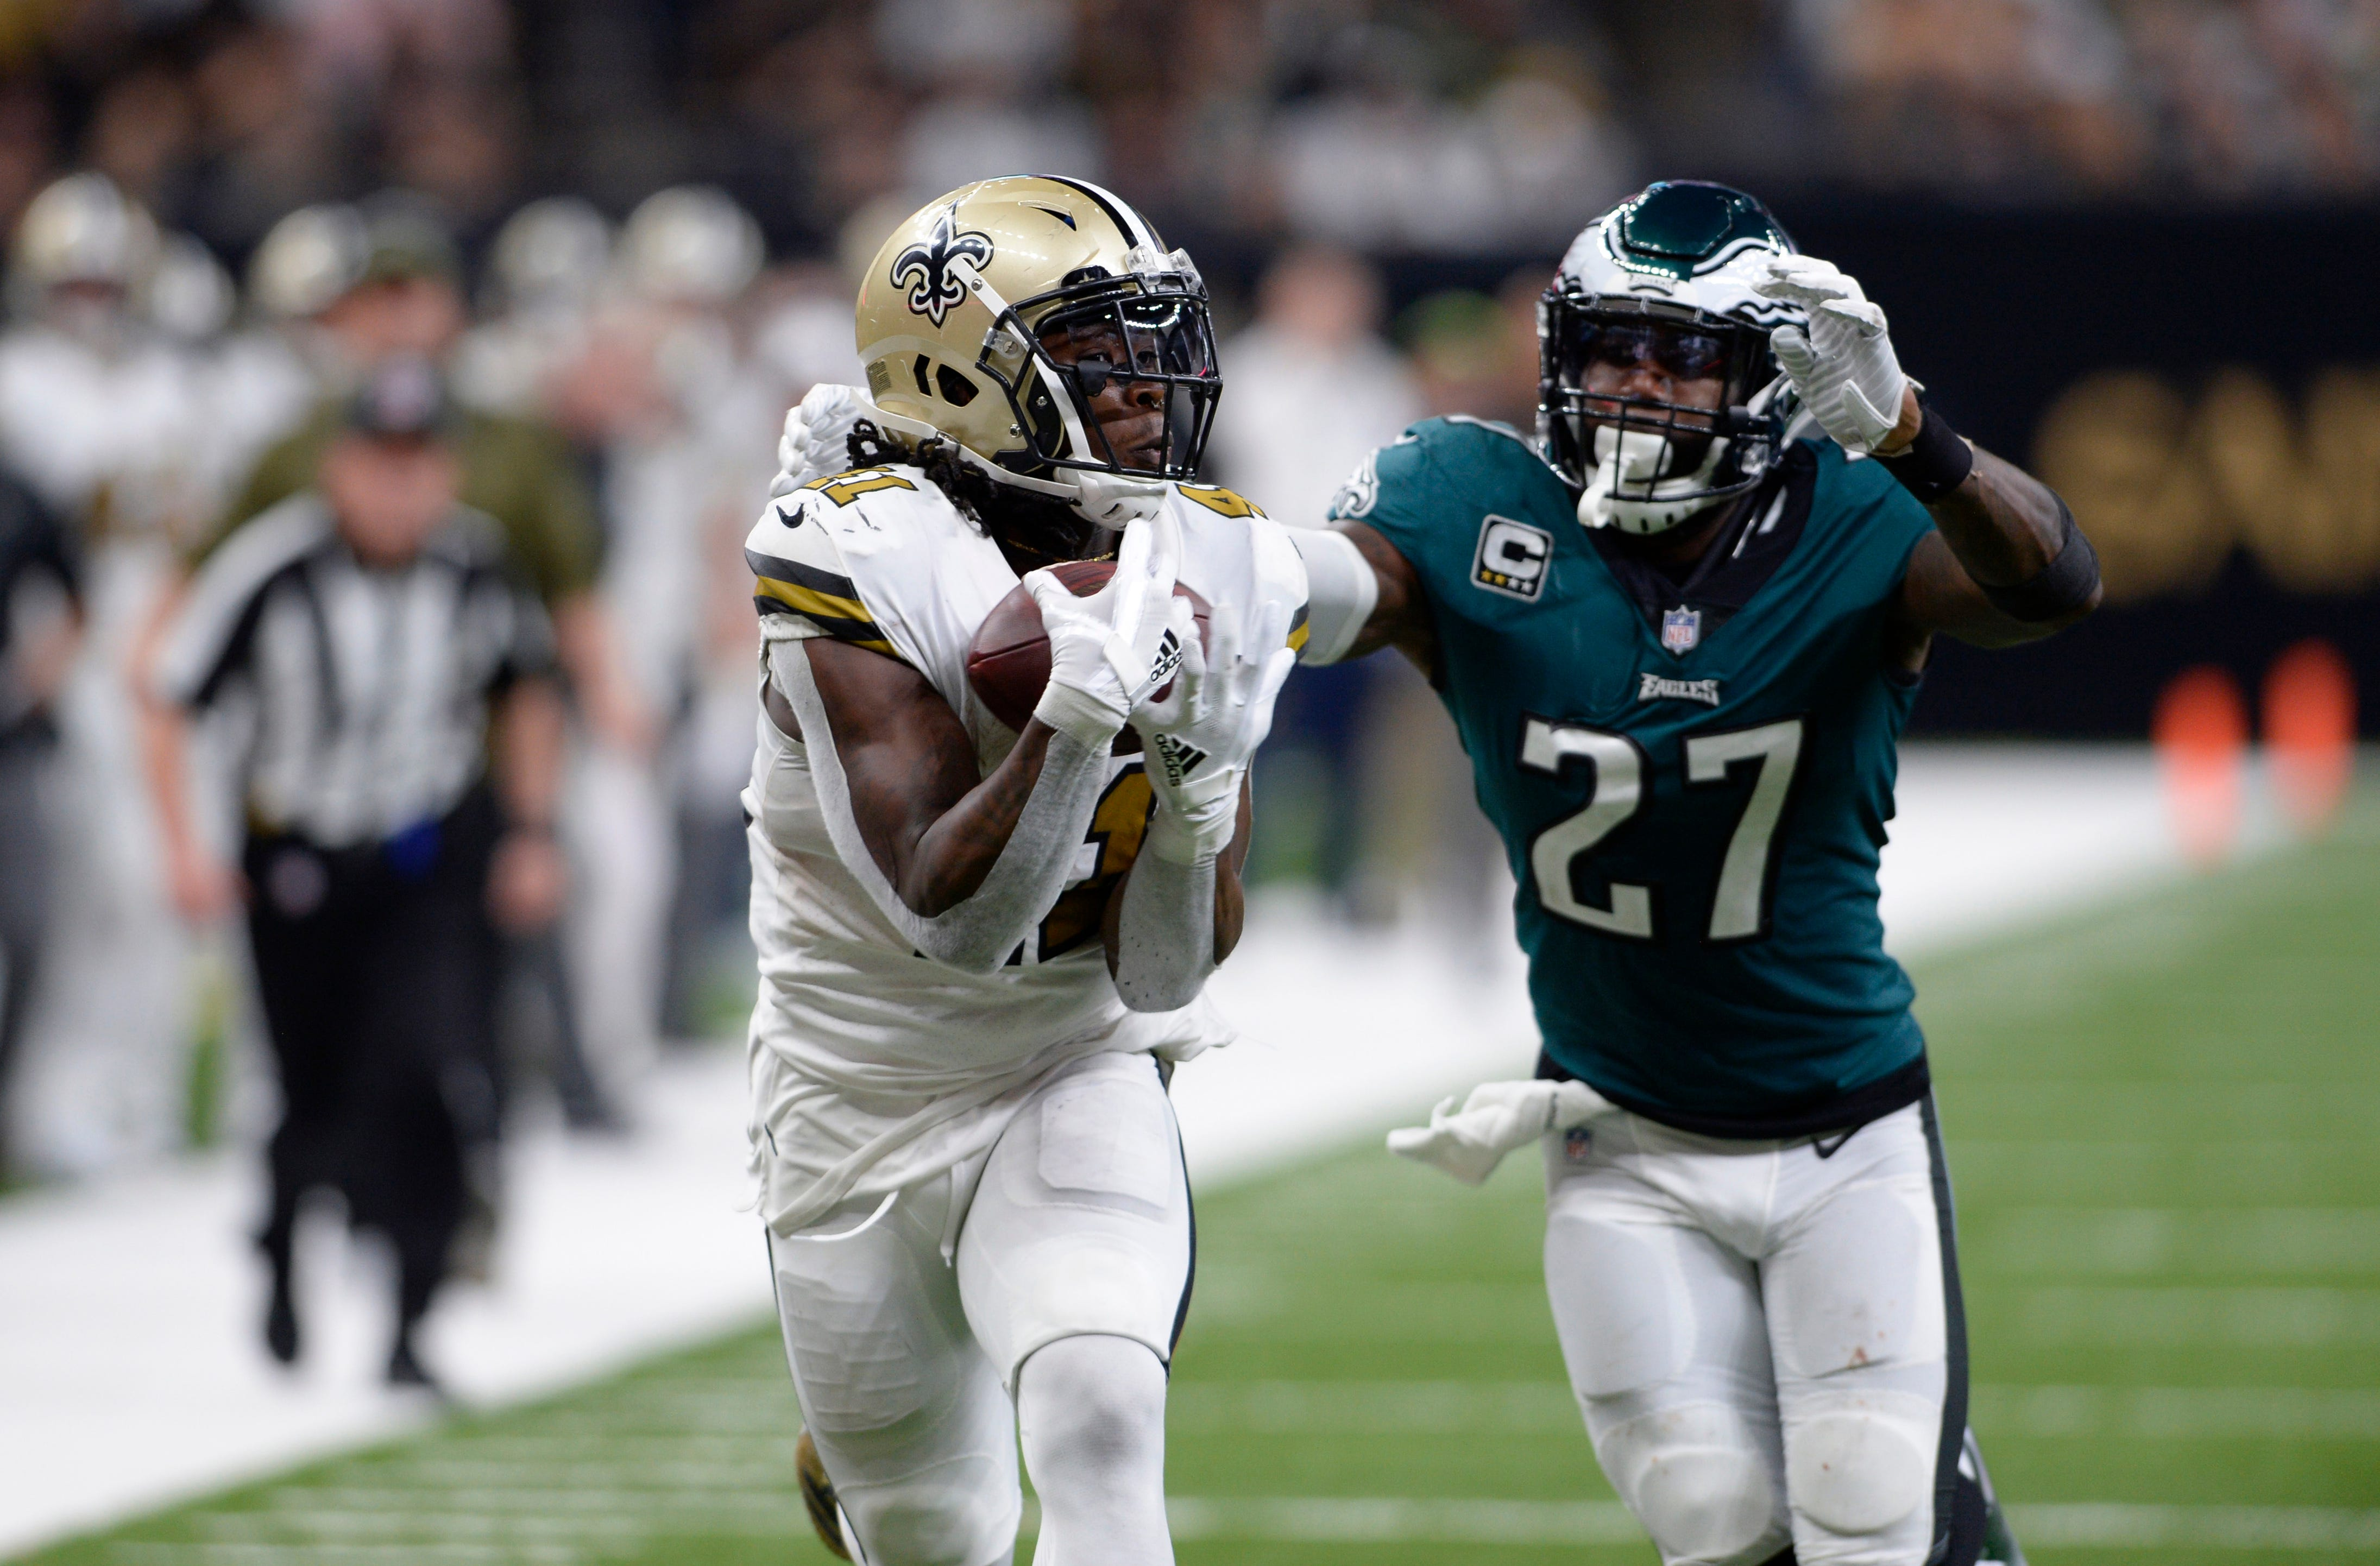 Eagles were blown out by the Saints in November. Now, it's a playoff rematch